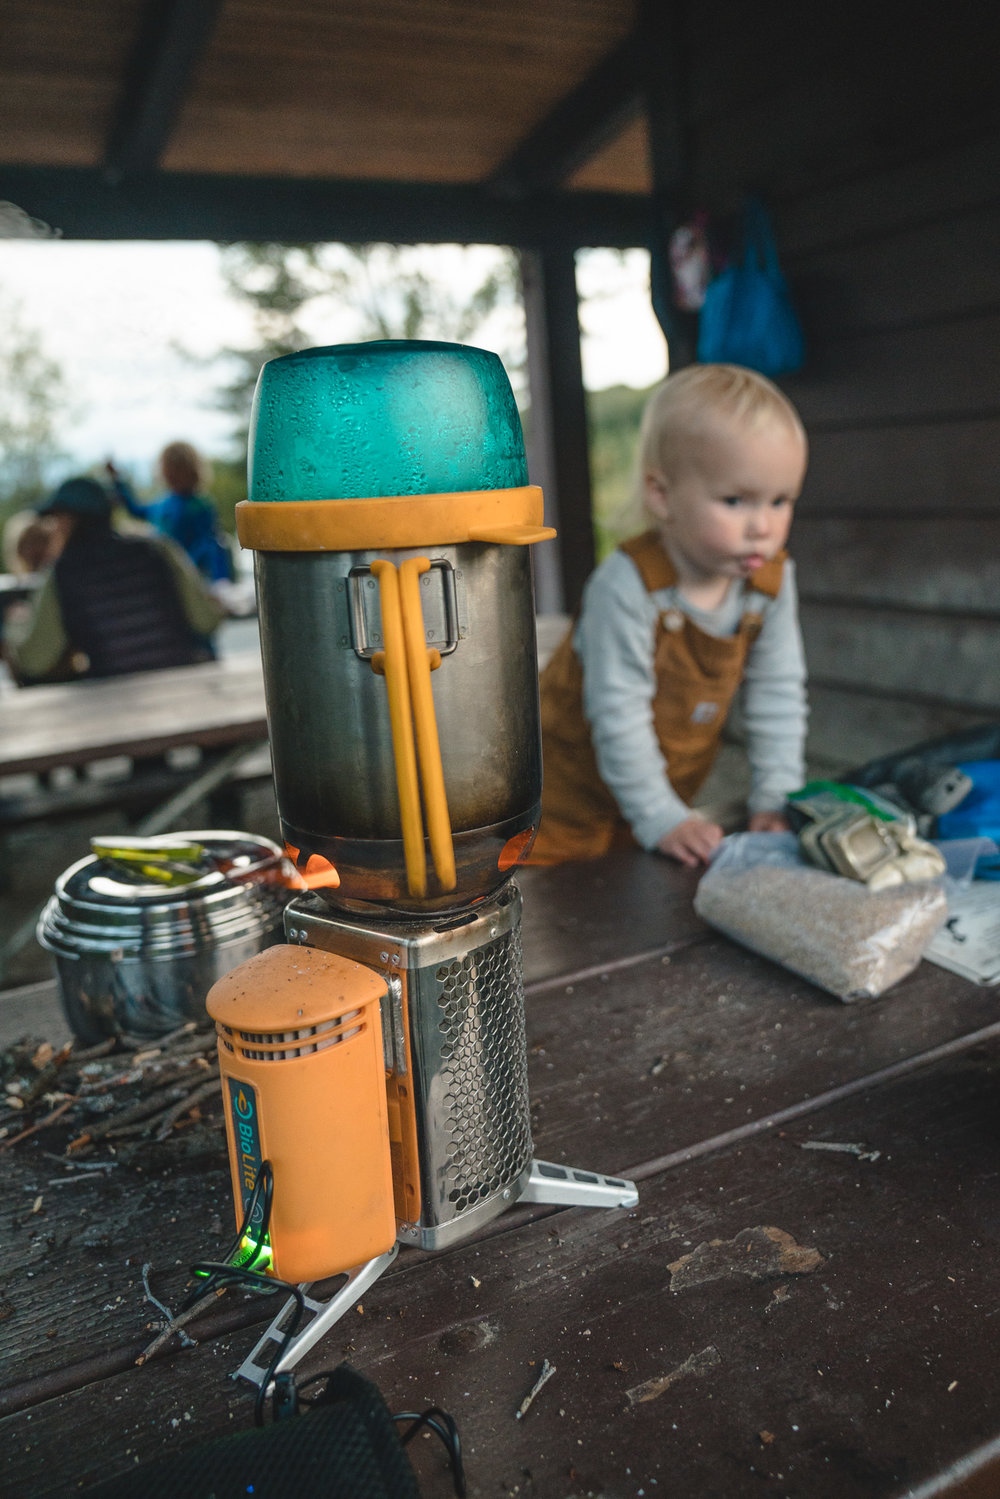 This BioLite stove is just about our favorite thing ever. Burns twigs so you don't have to carry fuel, boils water quickly, and you can even use it to charge devices. It's The Best.